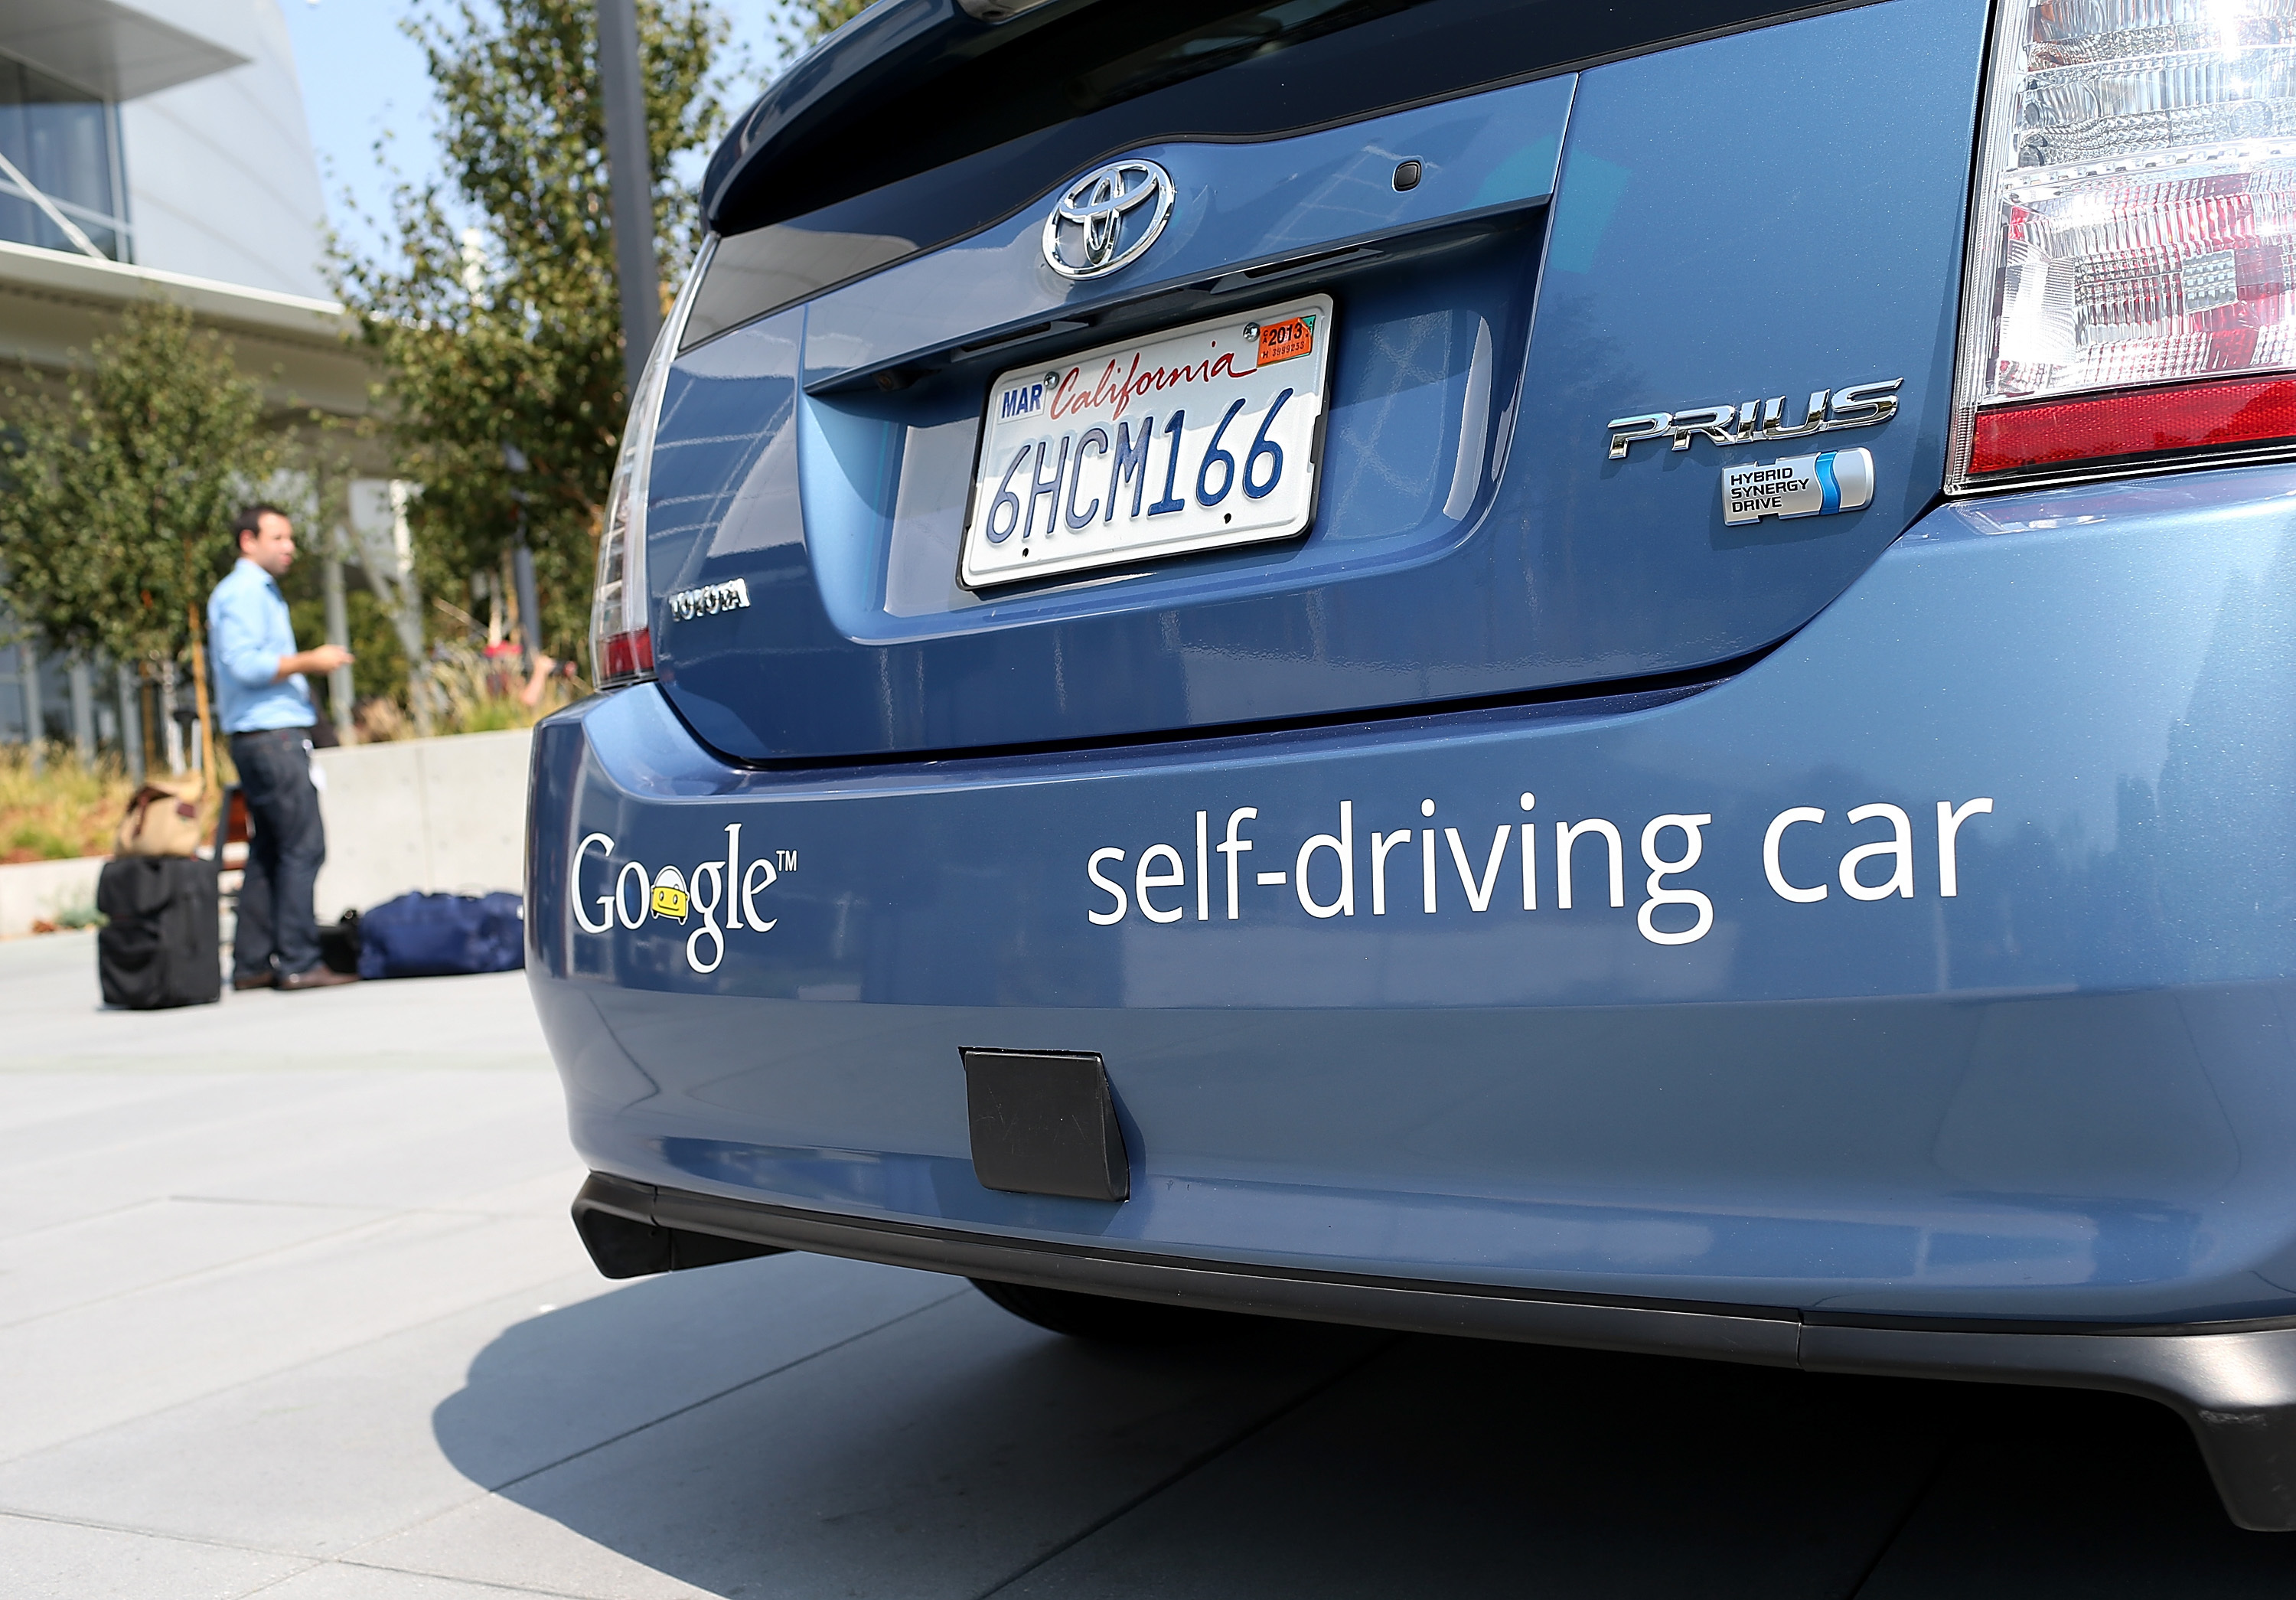 Remotely Controlled Autonomous Vehicles Areing €  For Better Or For Worse  Inverse